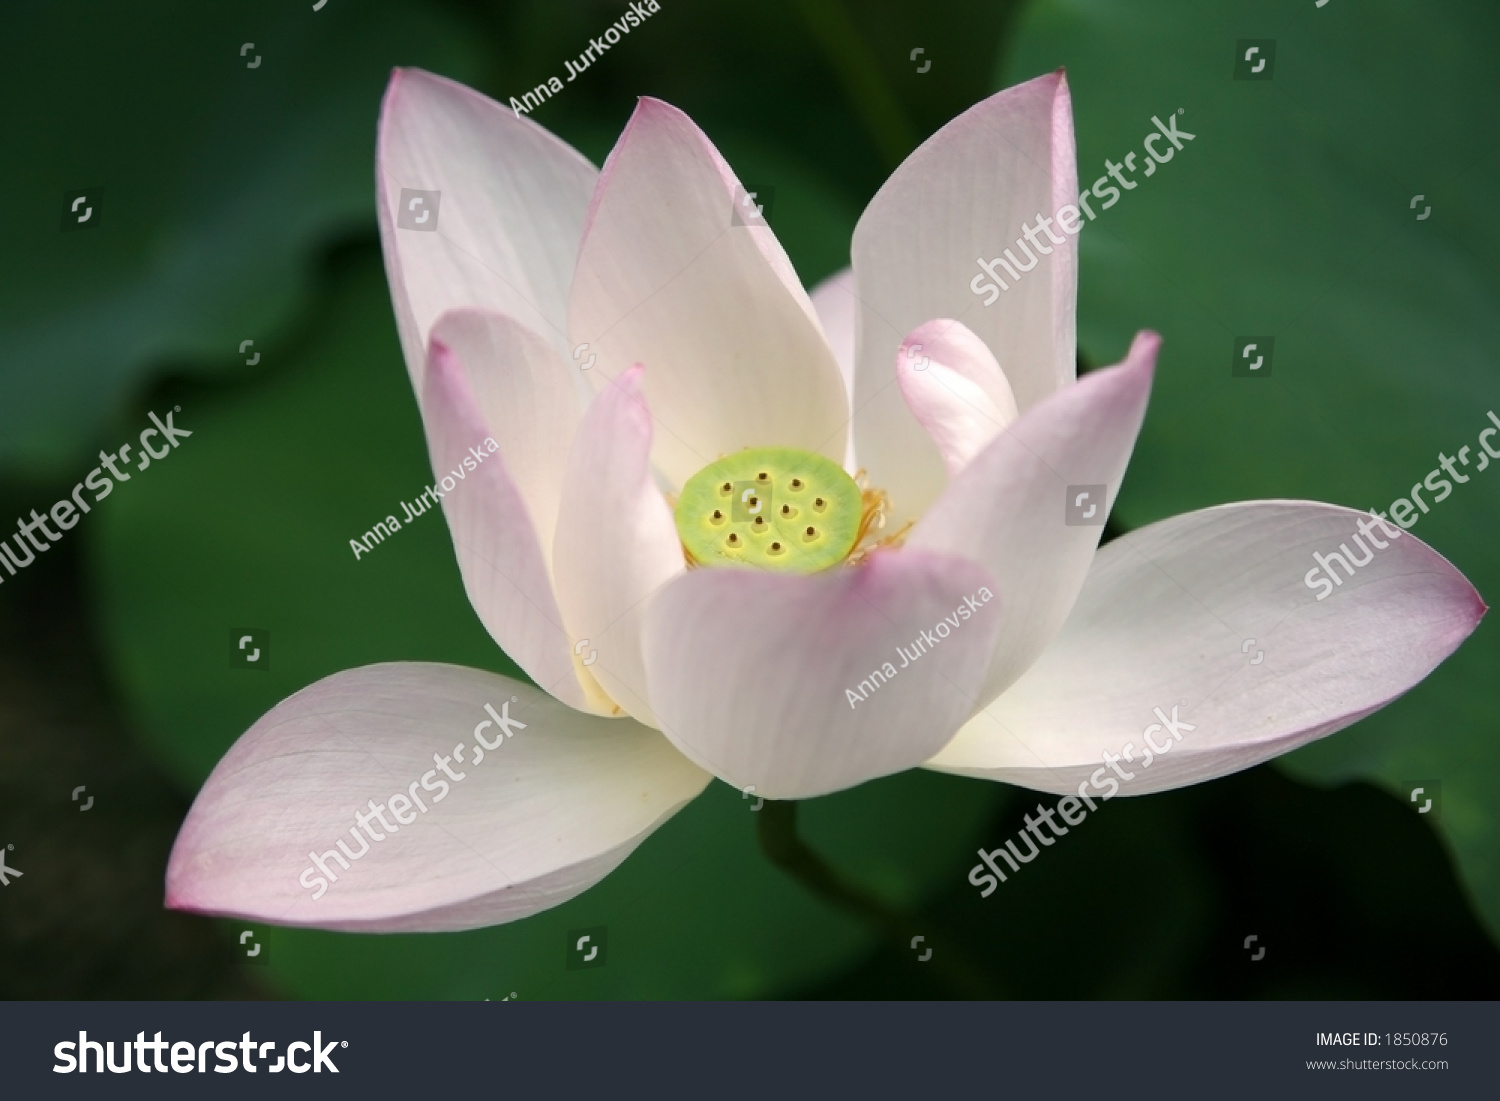 Open lotus flower stock photo edit now 1850876 shutterstock open lotus flower izmirmasajfo